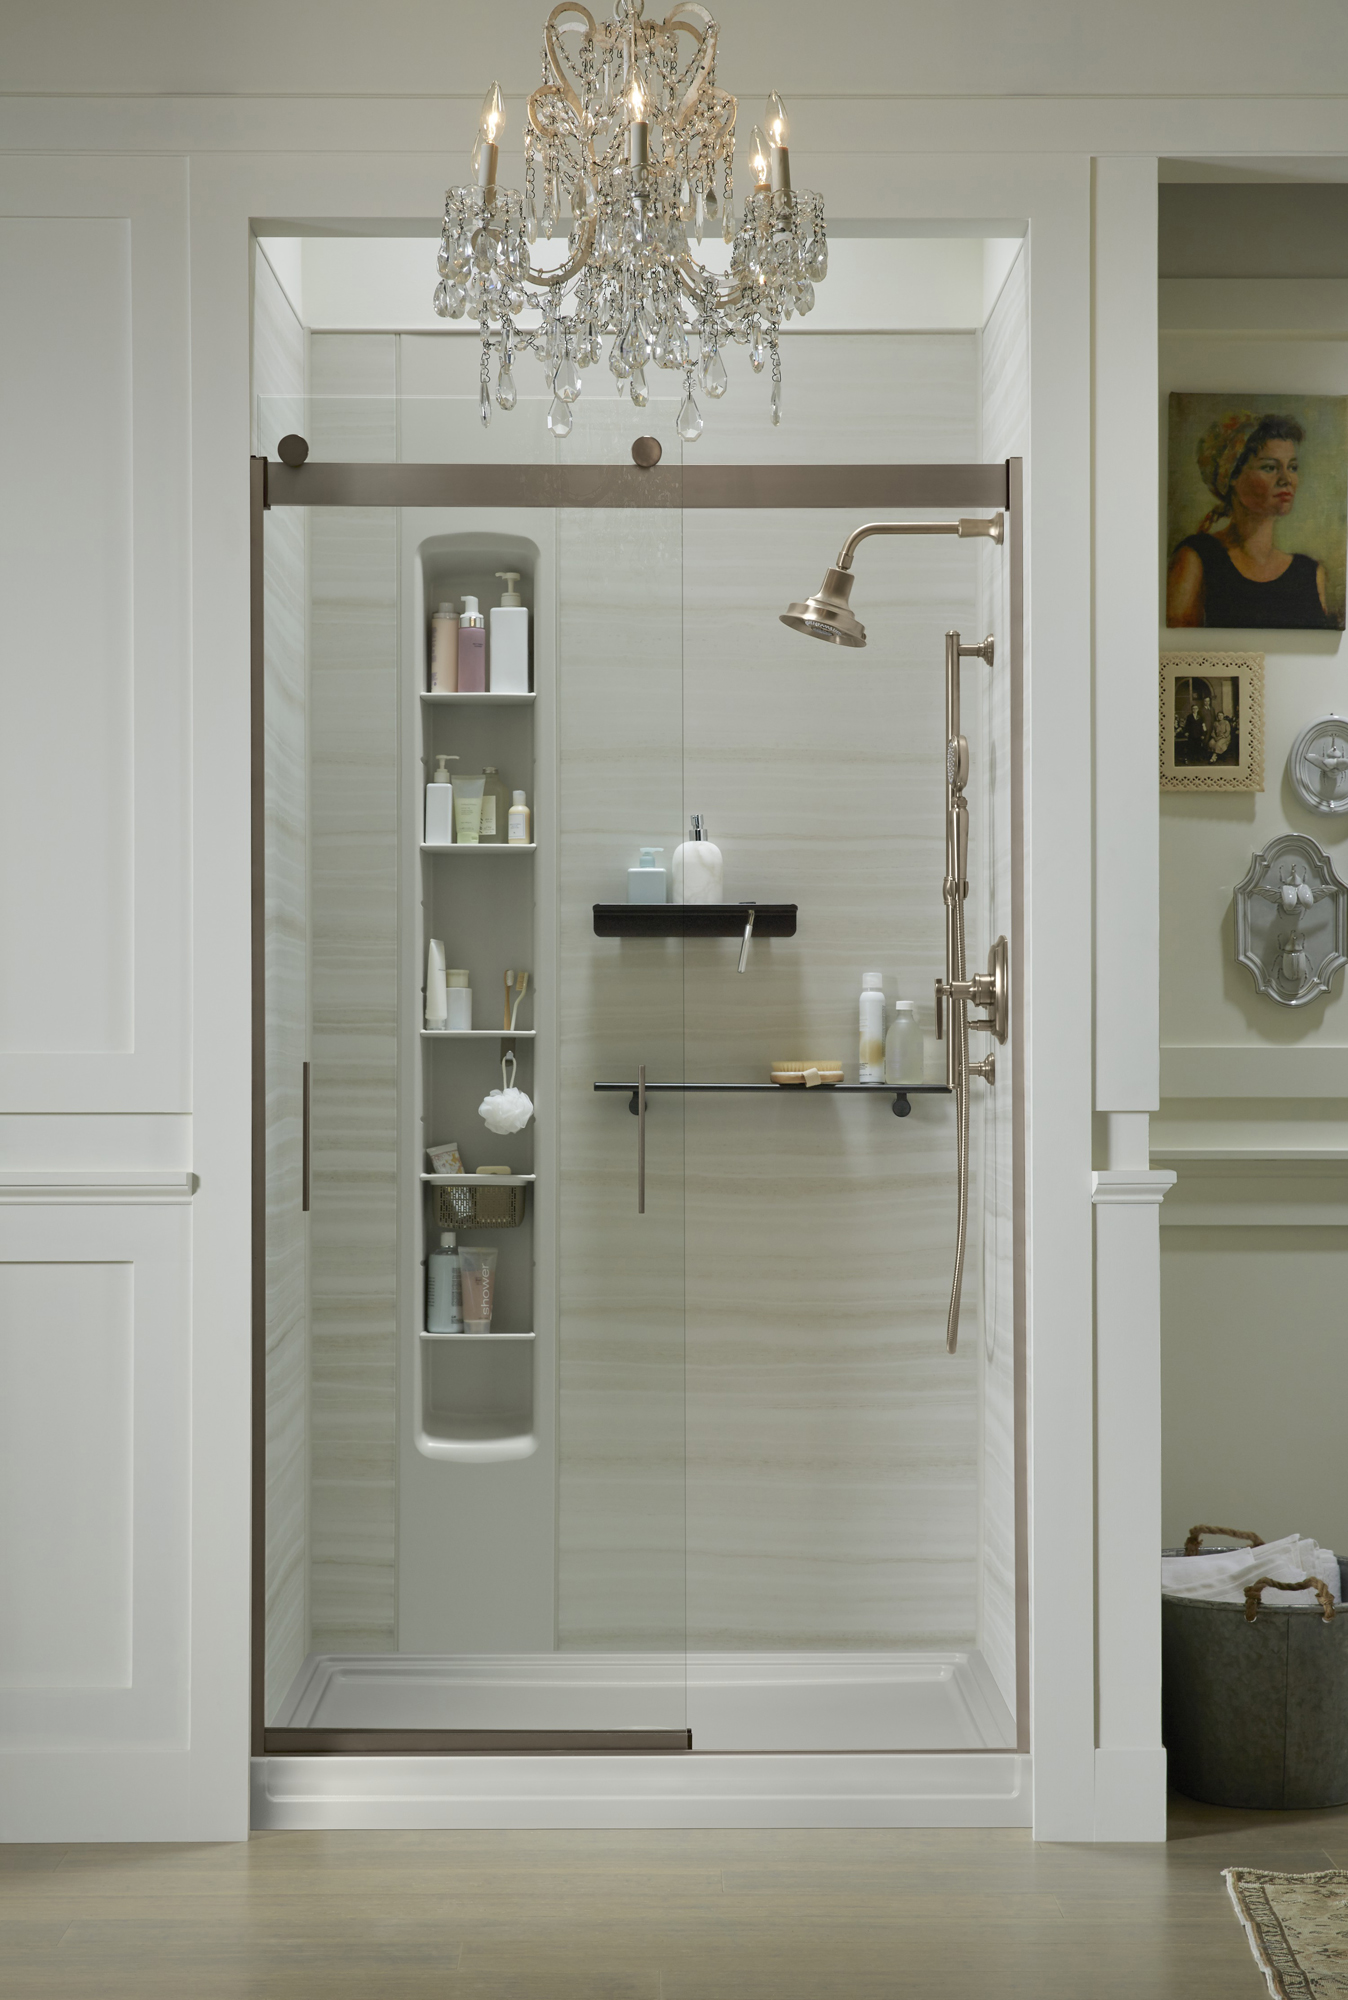 Choreograph® shower walls     Choreograph shower barre     Levity® shower door     Margaux® showerhead     Choreograph Shower Locker®    Designed to stay clutter-free, this shower features built-in storage with adjustable shelves, hooks and baskets.